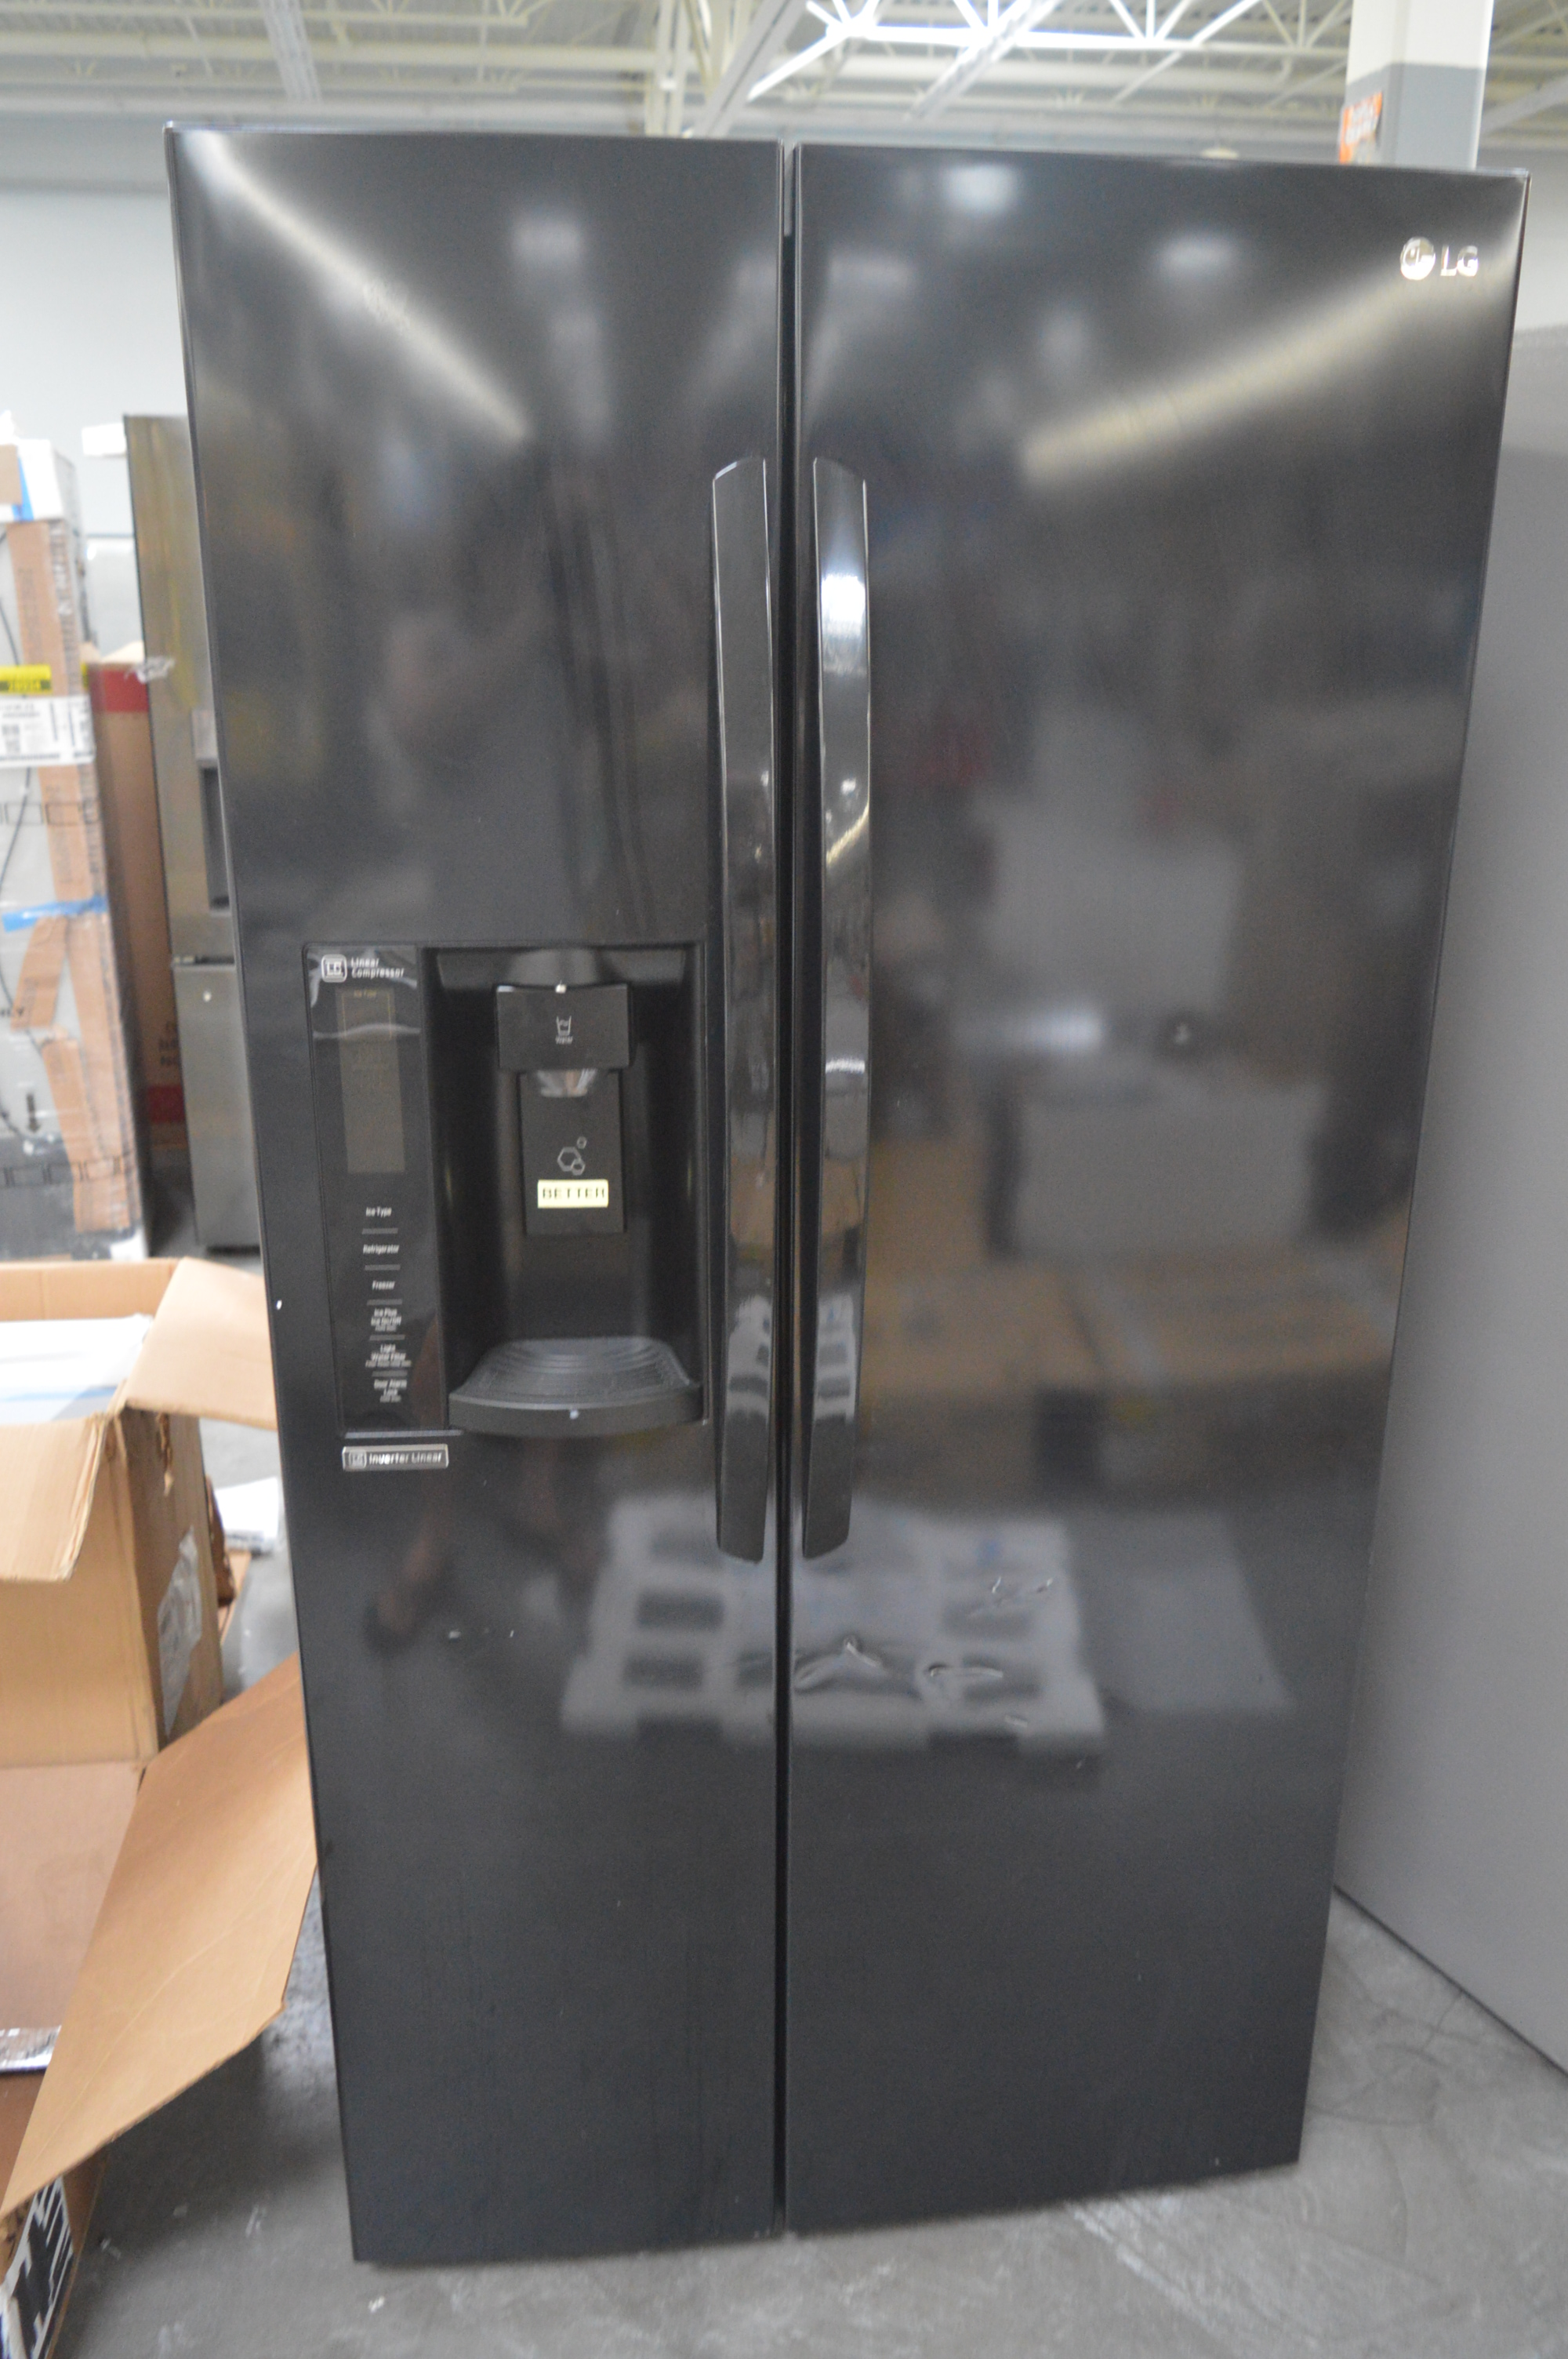 LG LSXS26326B Side By Side Refrigerator Black